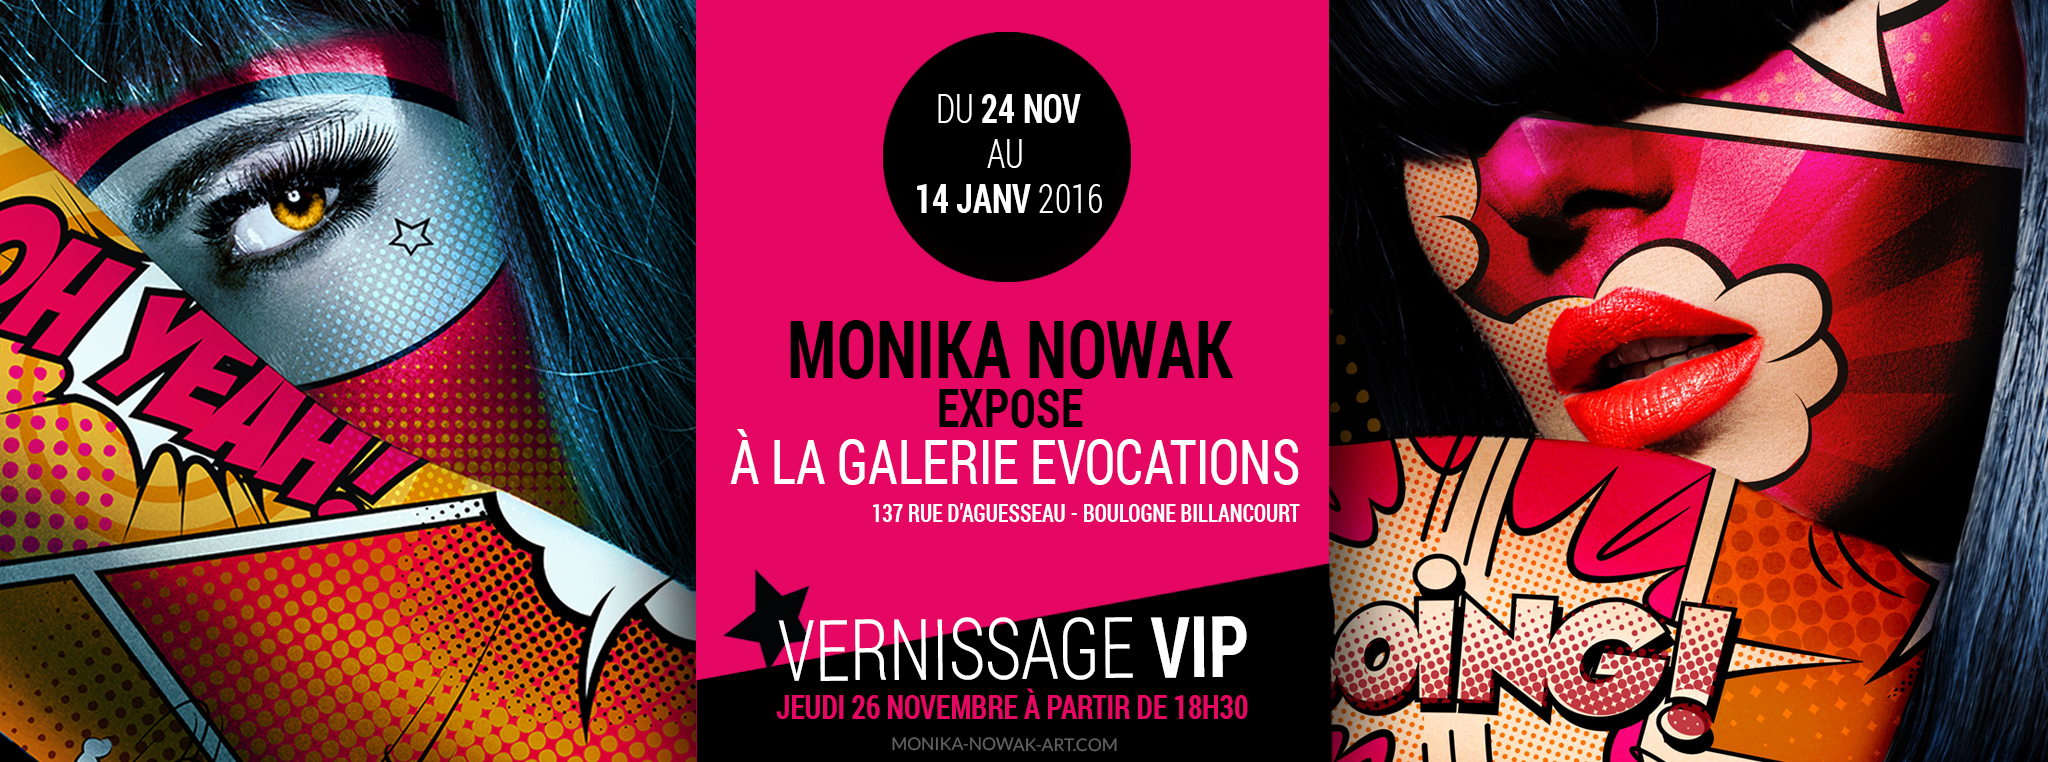 Monika Nowak Art Shows